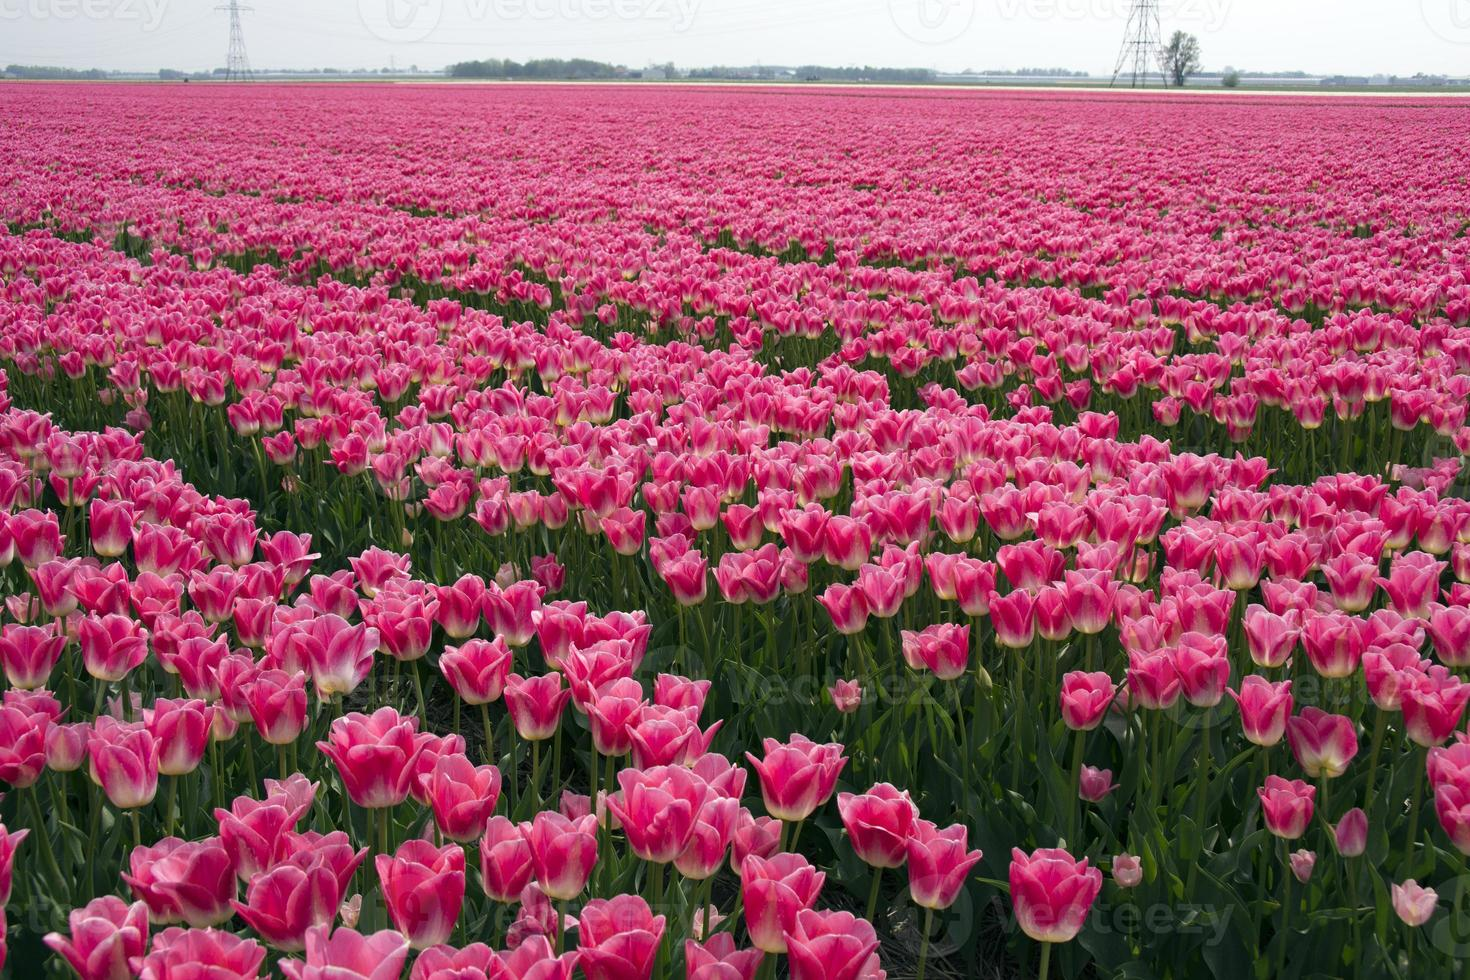 Fields with pink tulips photo